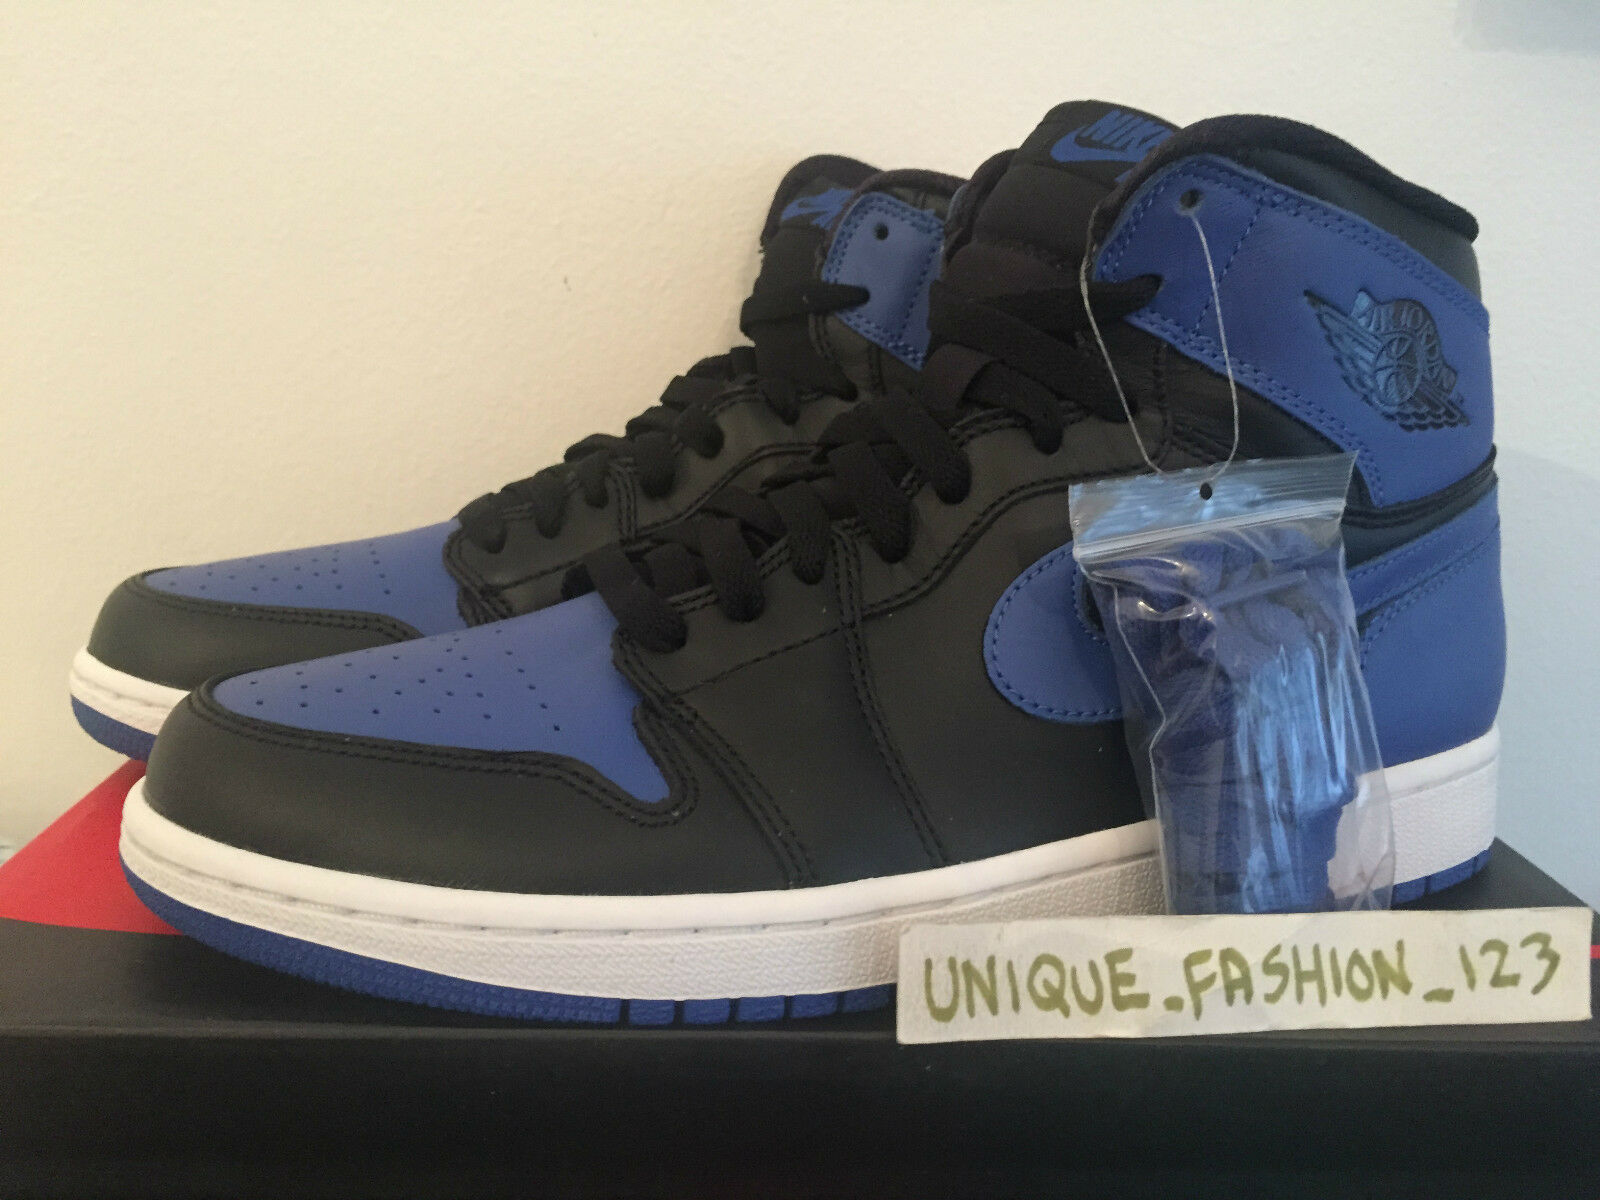 2018 NIKE AIR JORDAN 1 HIGH OG noir ROYAL bleu US 15 14 49.5 B rouge RETRO HI AJ